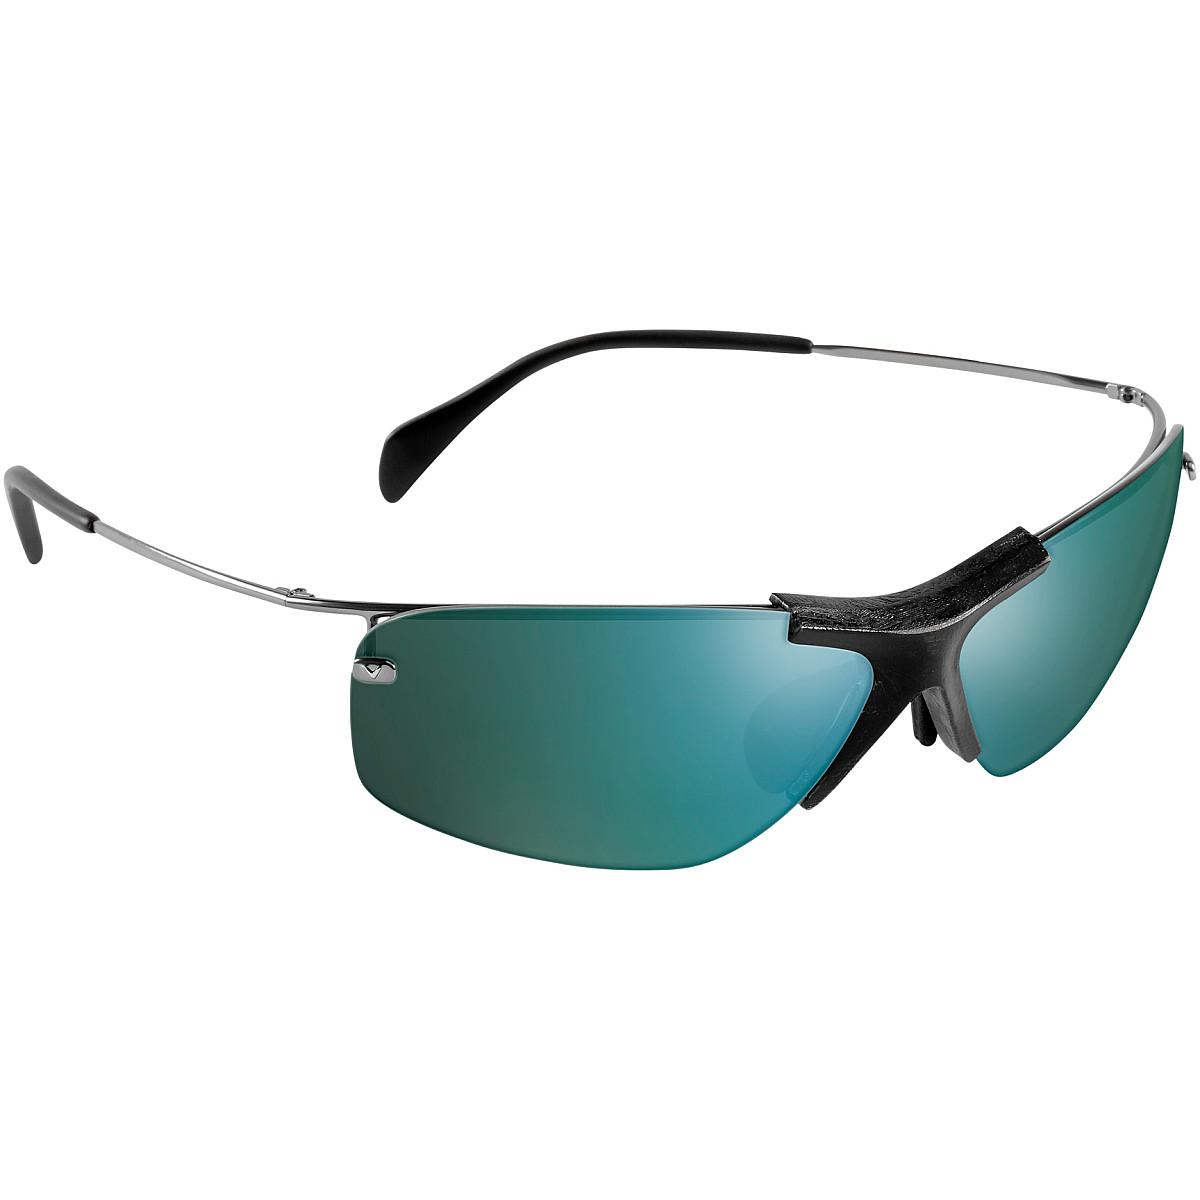 5994fee6f80 CALLAWAY SUNGEAR GOSHAWK GOLF SUNGLASSES 689769800368